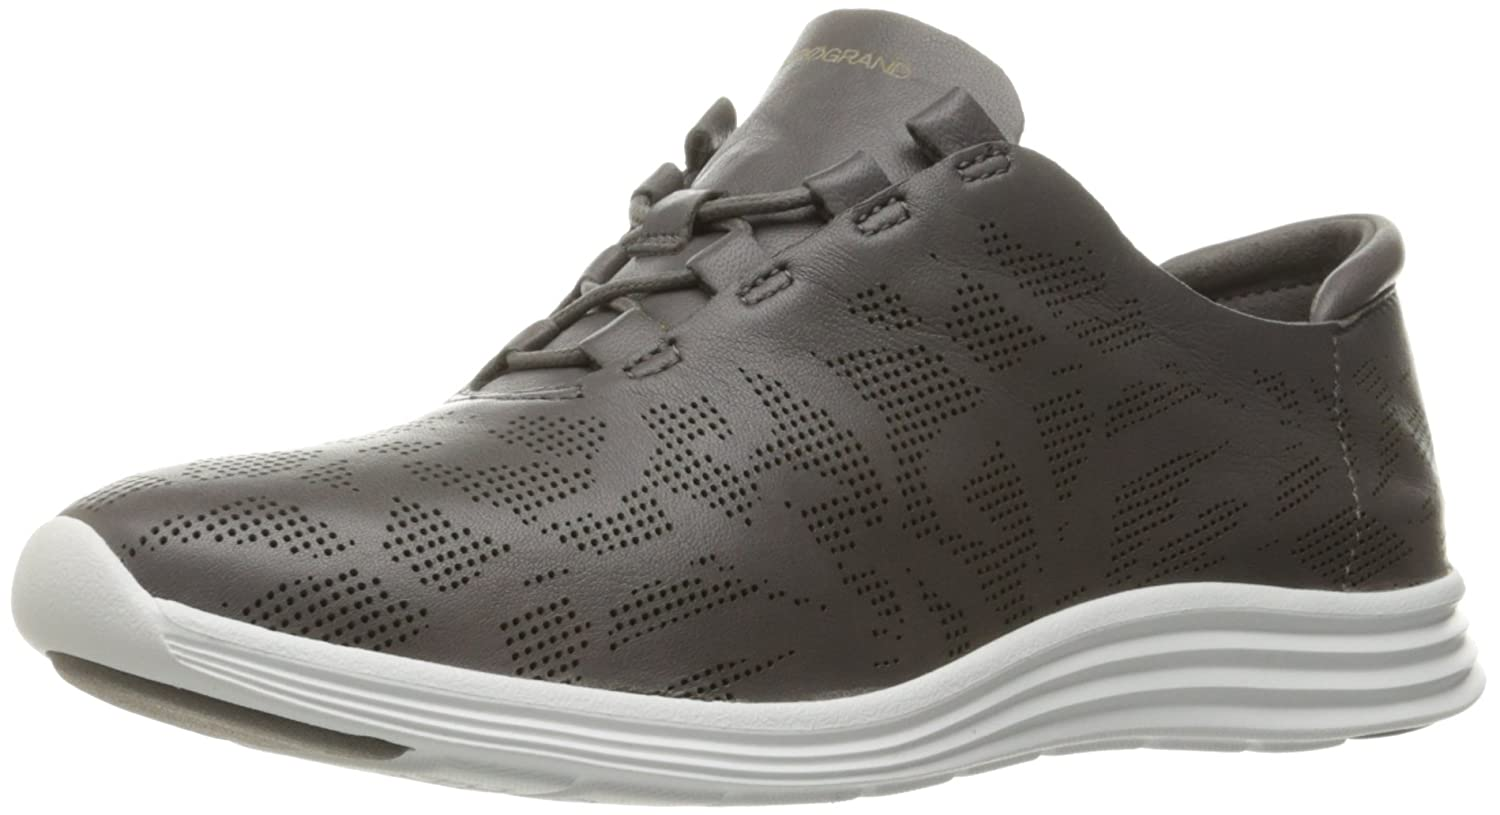 Cole Haan Women's Original Grand Perf Fashion Sneaker B01IQPMYCW 8.5 B(M) US|Storm Cloud Perforated Leather/Optic White